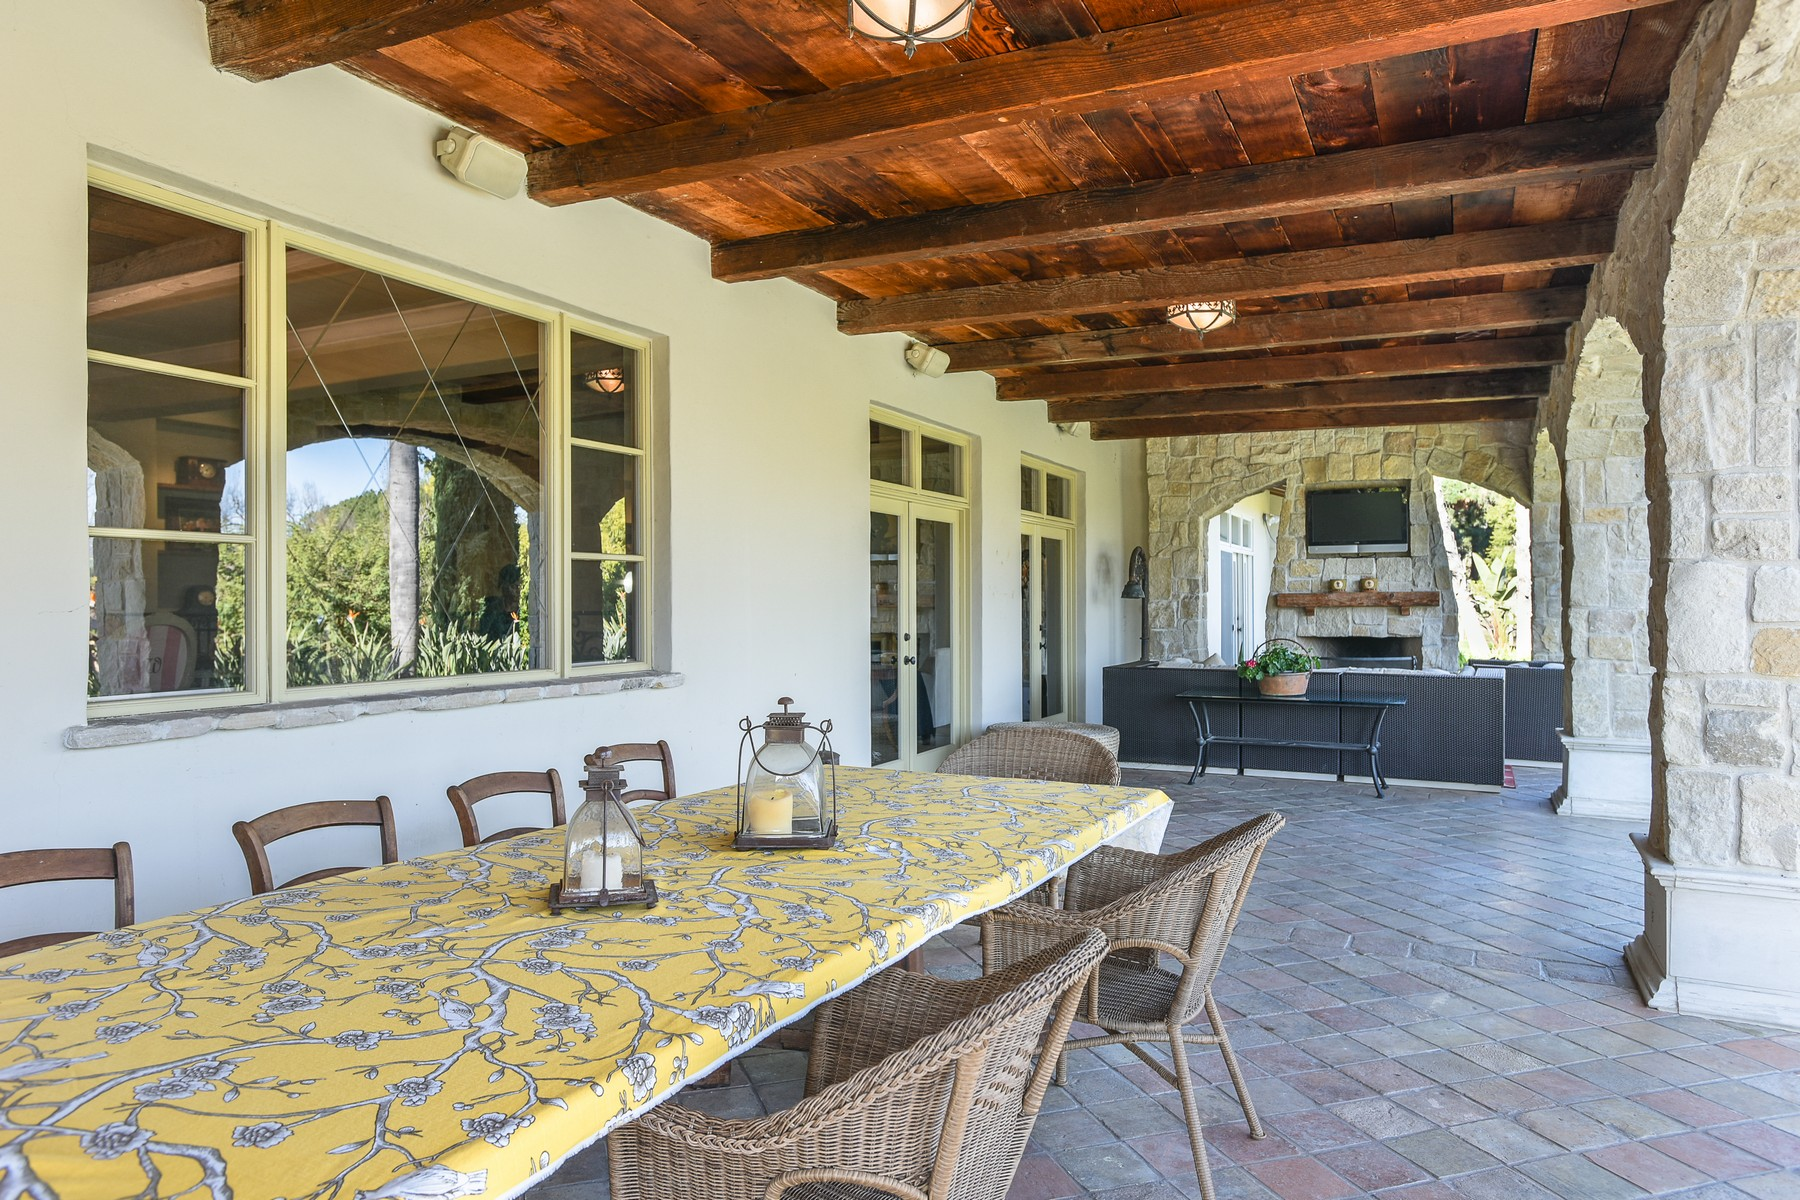 Additional photo for property listing at 7045 El Vuelo Del Este  Rancho Santa Fe, California 92067 Estados Unidos